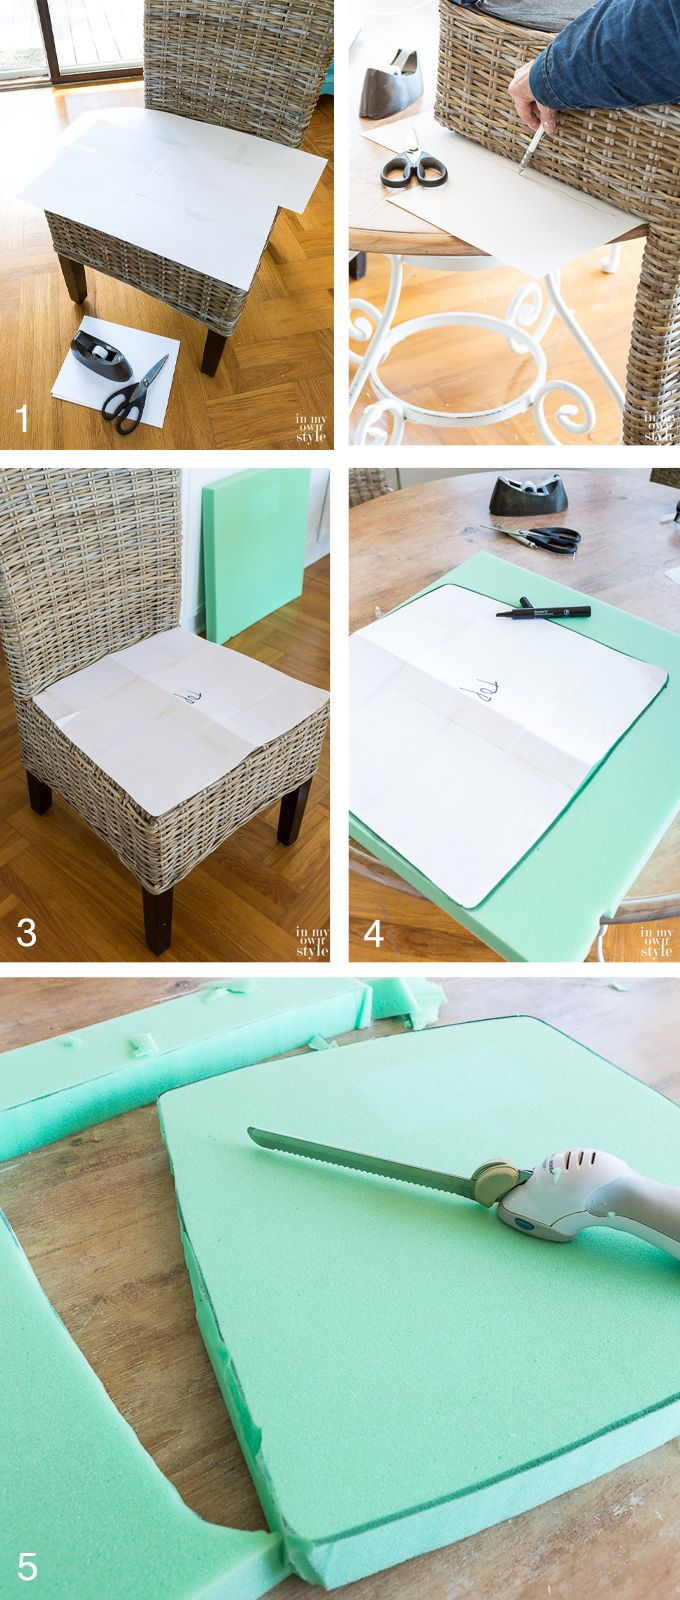 Tutorial Showing How To Make Affordable Custom Chair Cushions For Amusing Custom Dining Room Chair Cushions Design Decoration